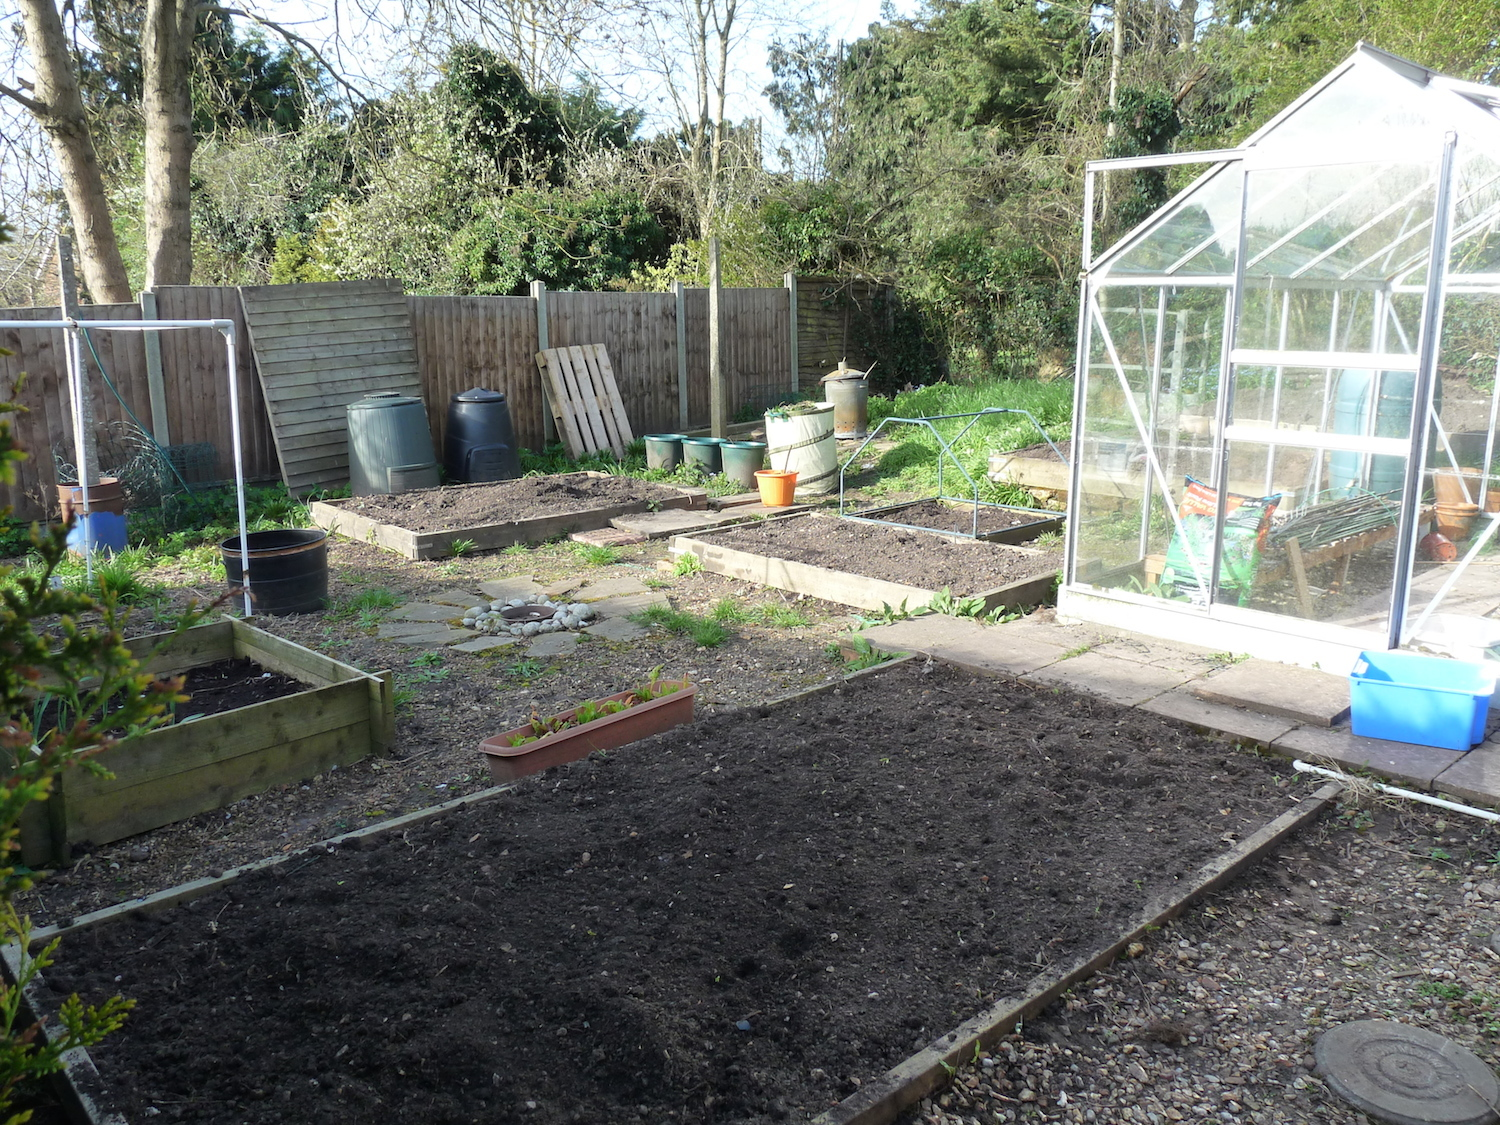 Veggie patch dug over and ready for planting